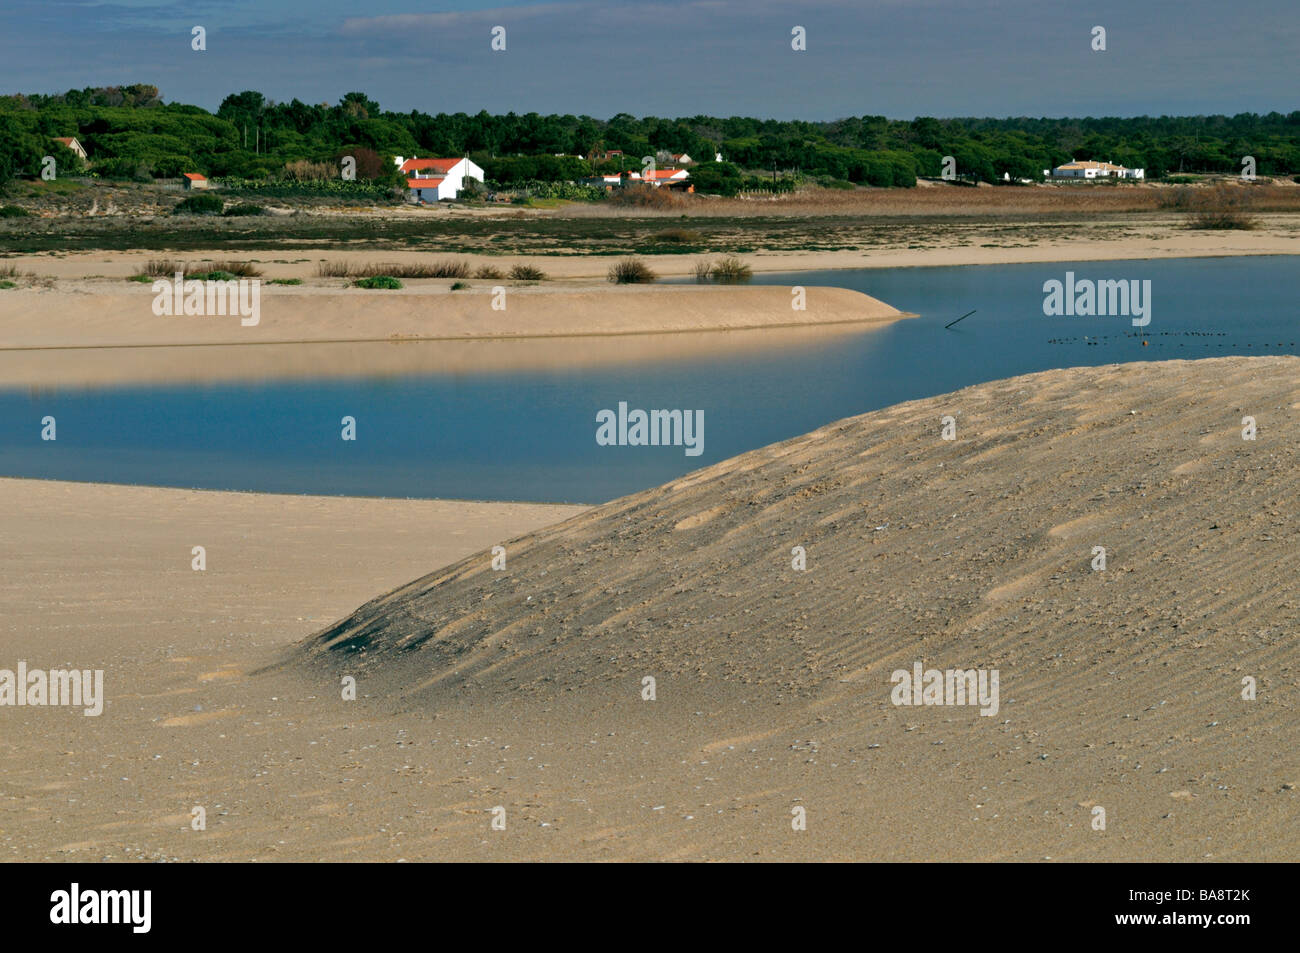 Dunes and lagoon at beach Praia de Melides - Stock Image